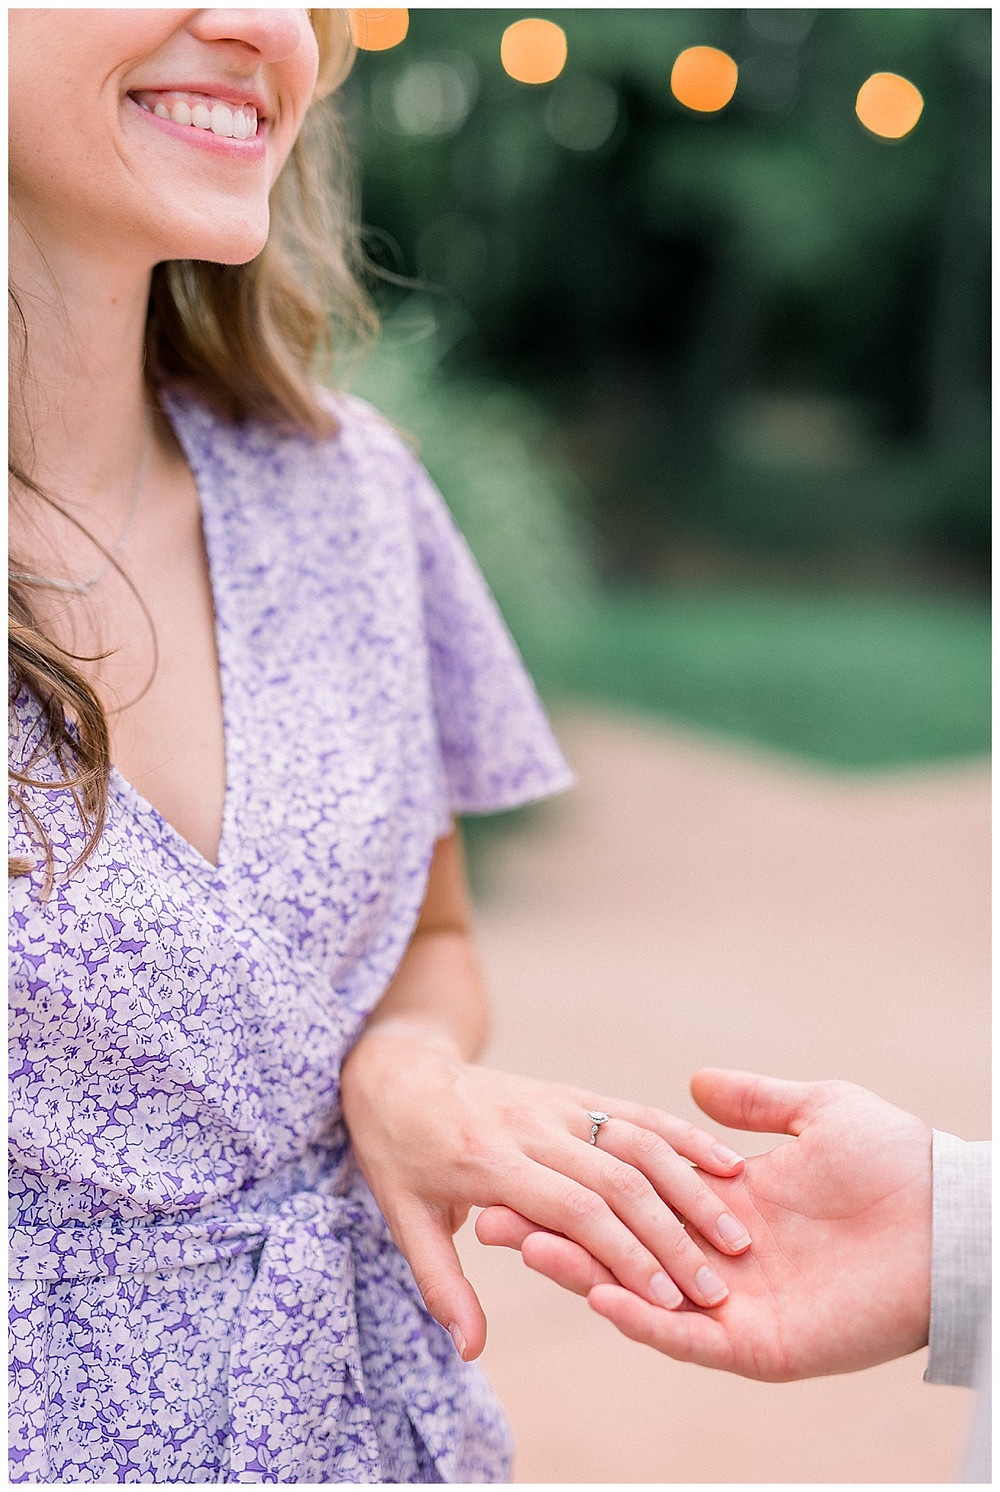 Woman holding fiancé's hand and showing engagement ring